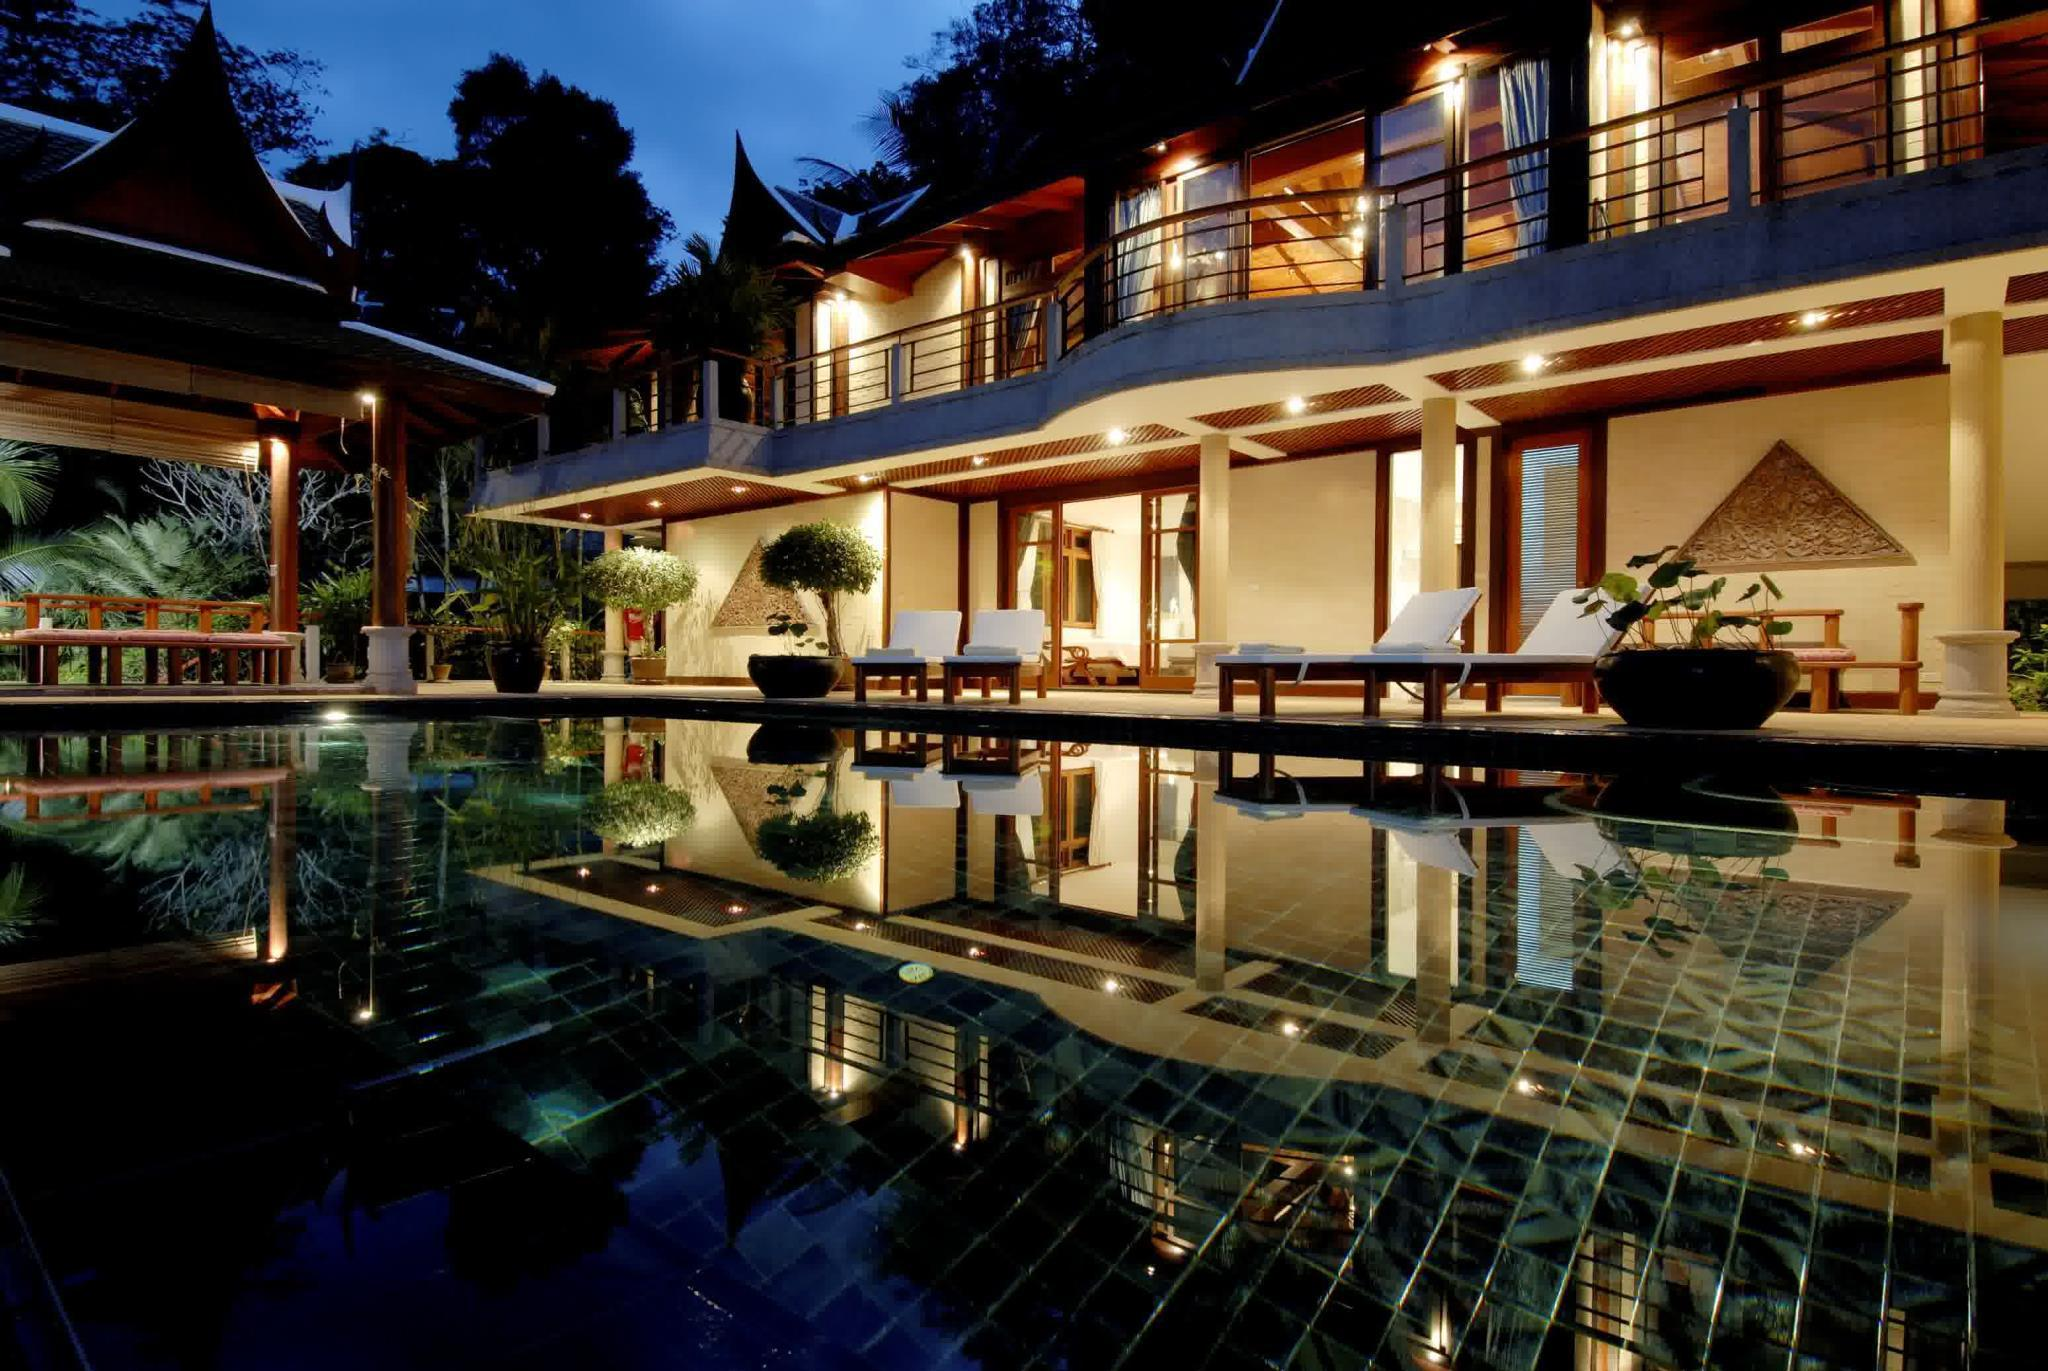 Surin Beach Villa 3 Bedrooms Phuket Surin Beach Villa 3 Bedrooms Phuket